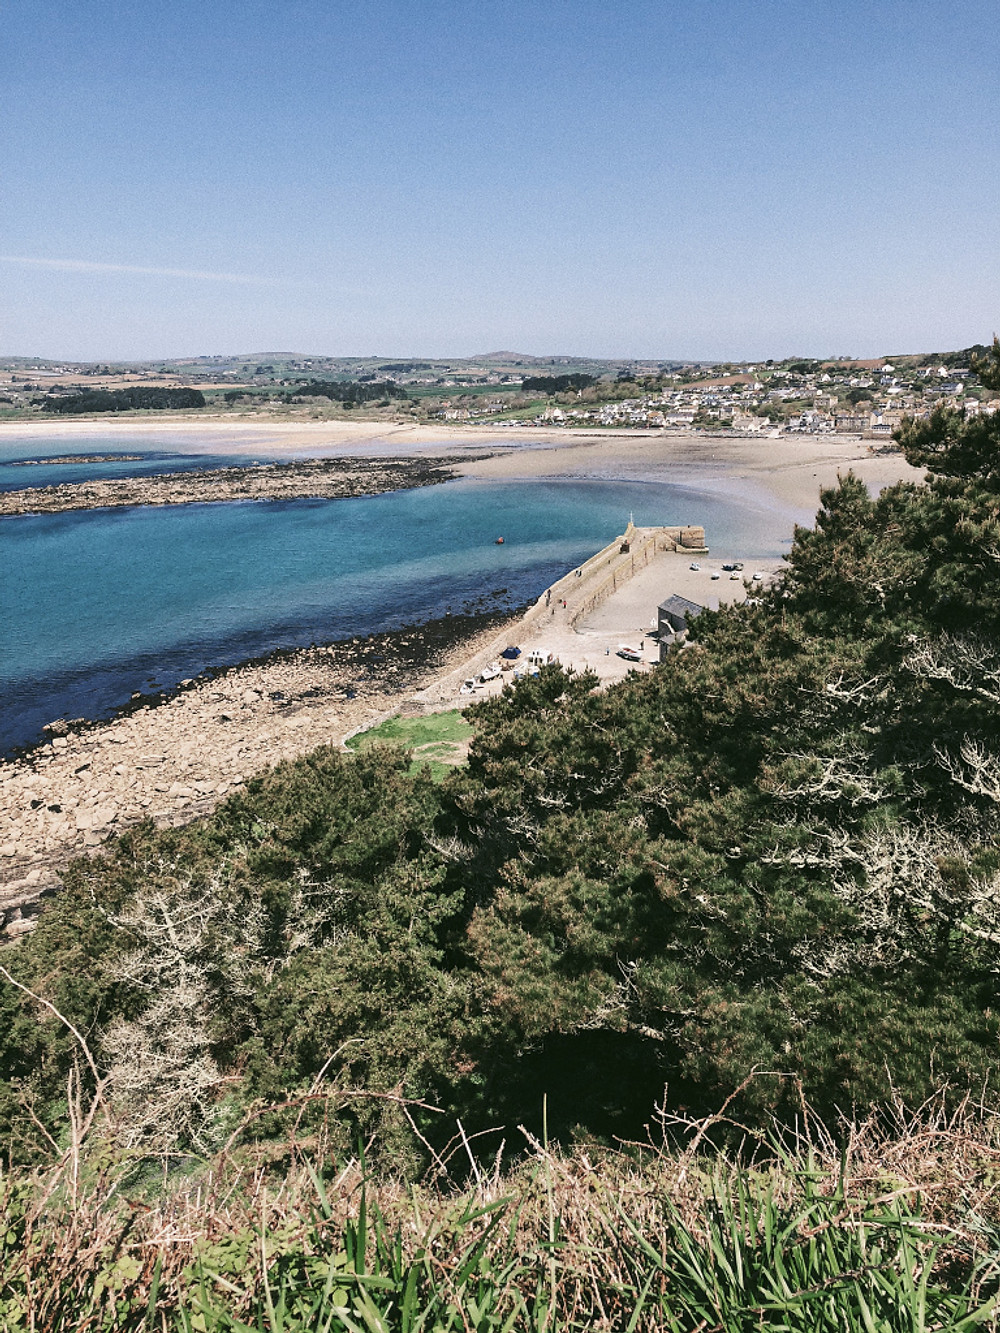 Road trip in Cornwall - Tate ST Ives. Too Many Plants Blog